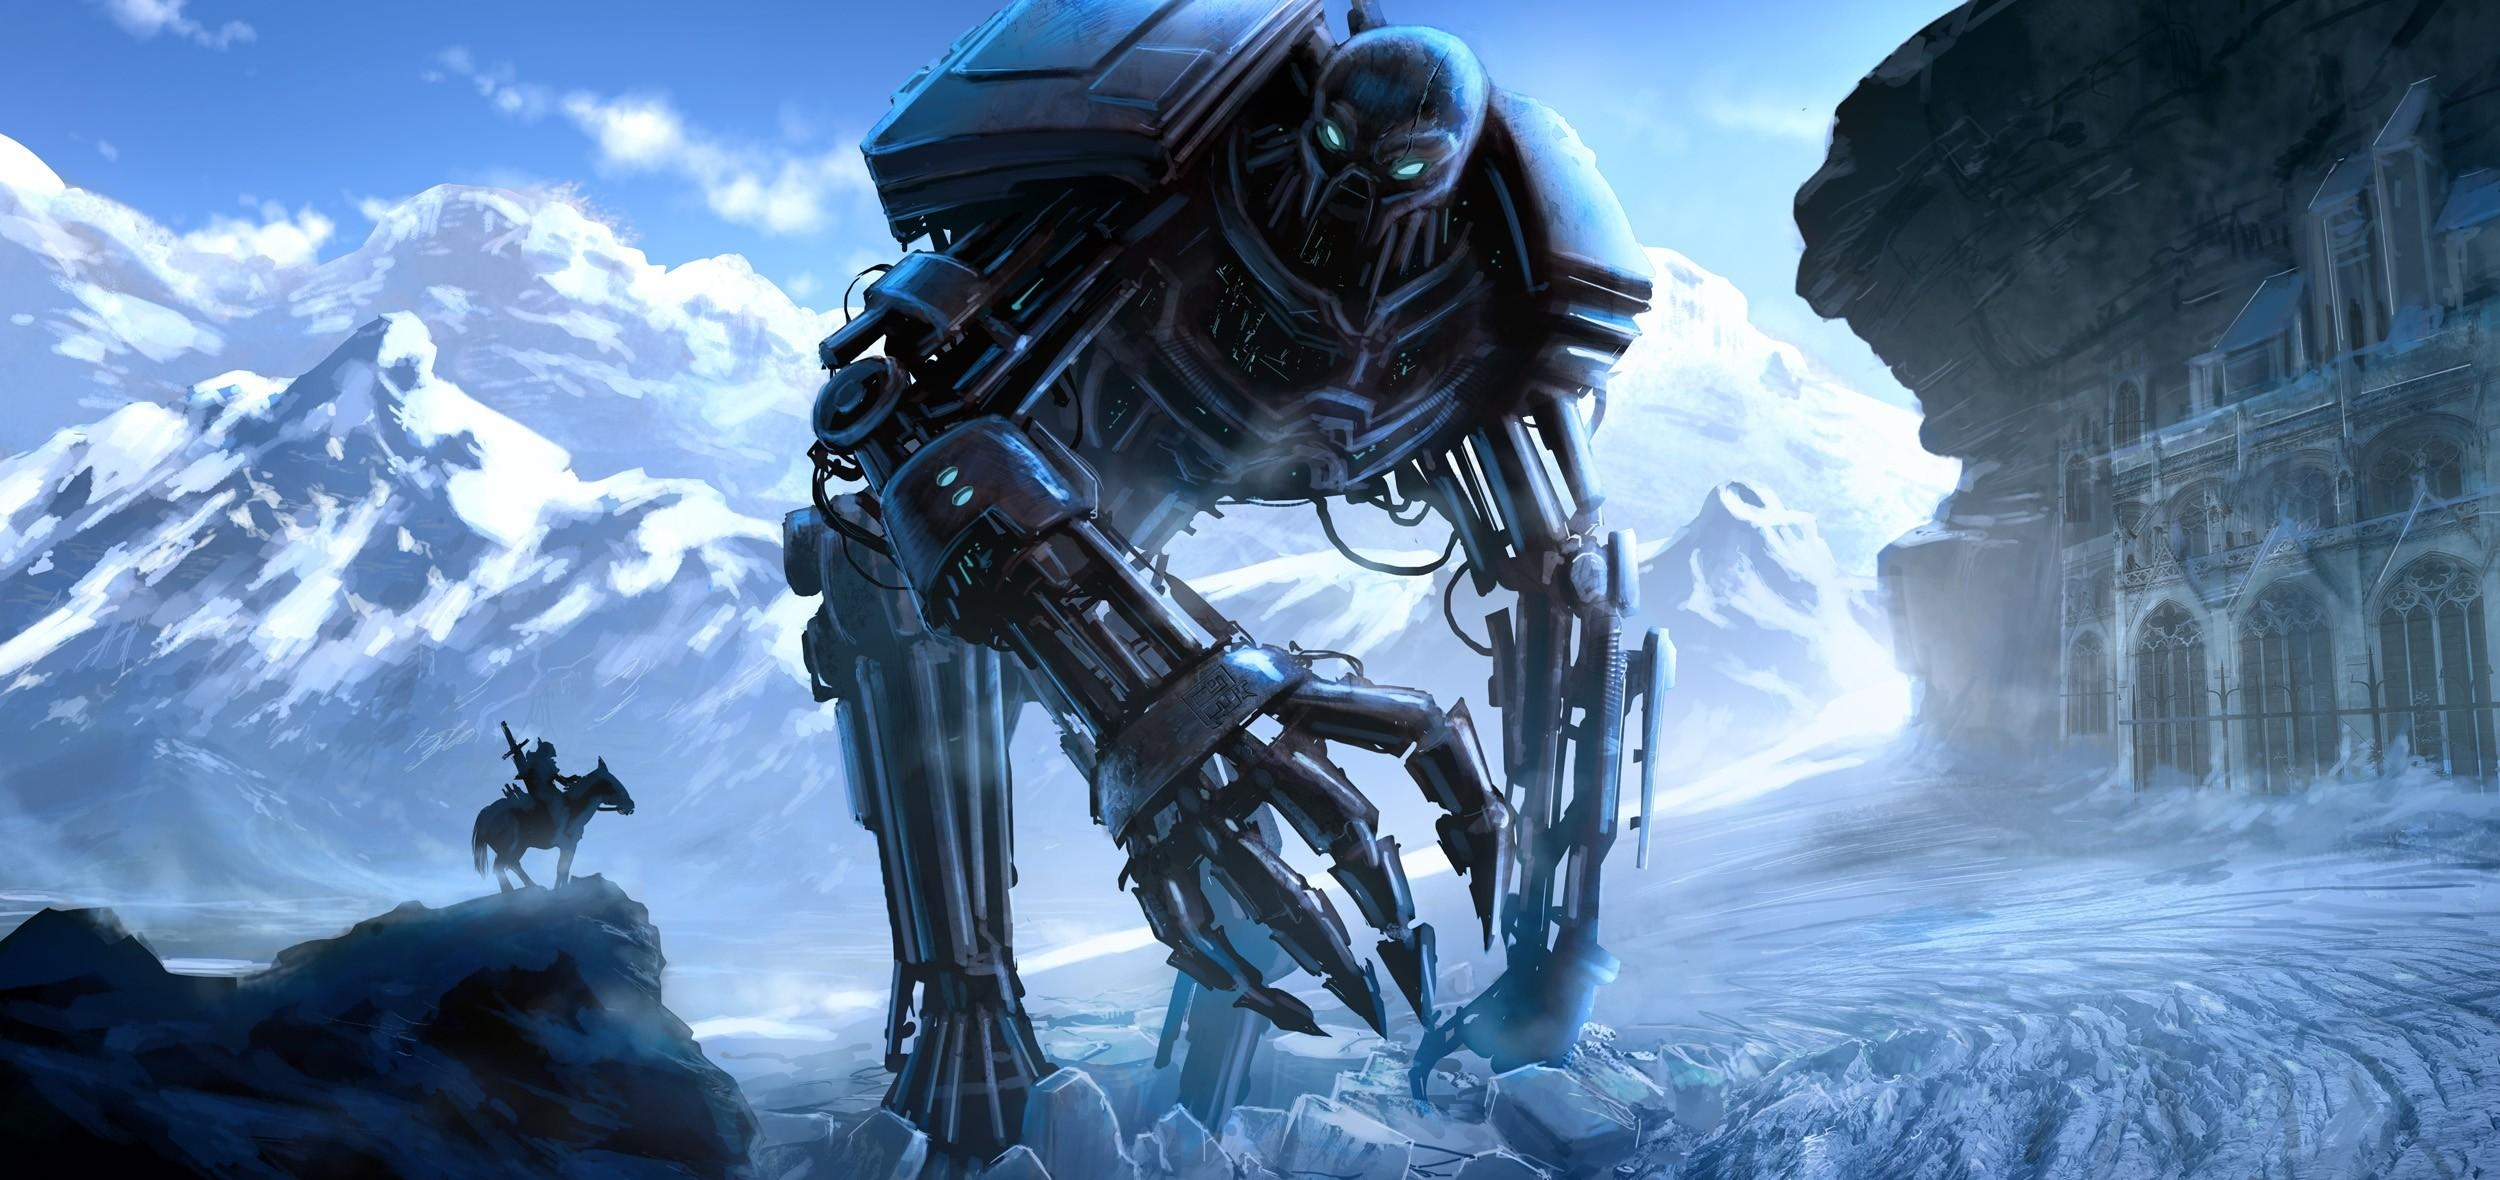 87518 Screensavers and Wallpapers Robot for phone. Download Fantasy, Mountains, Ice, Lock, Robot, Cyborg, Rider, Horseman pictures for free